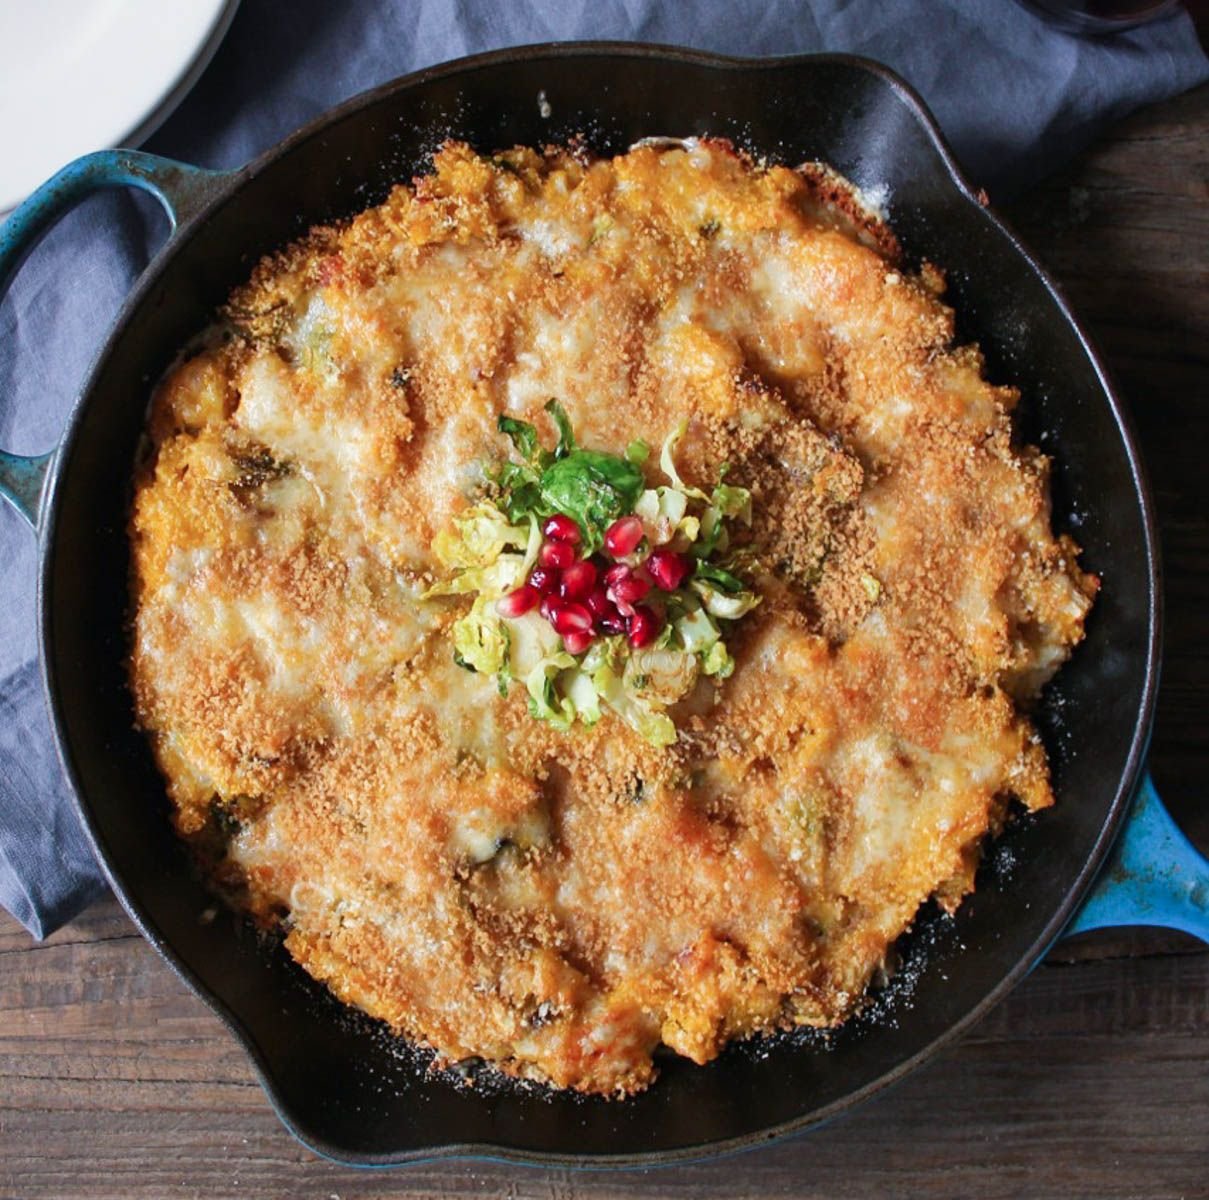 Kabocha Squash Quinoa Bake with Brussels Sprouts and Pancetta